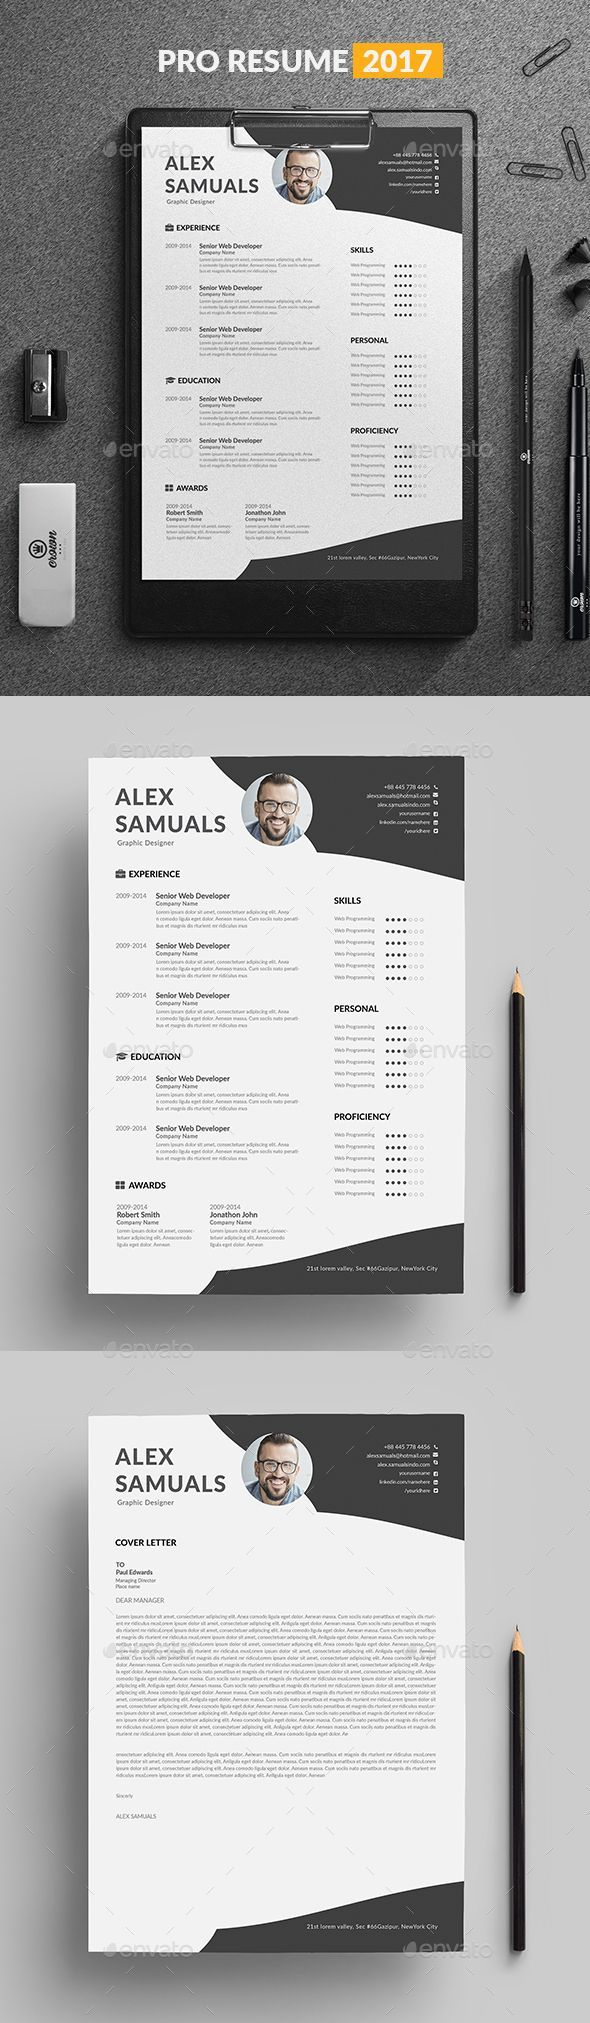 Resume & Cover Letter Templates PSD